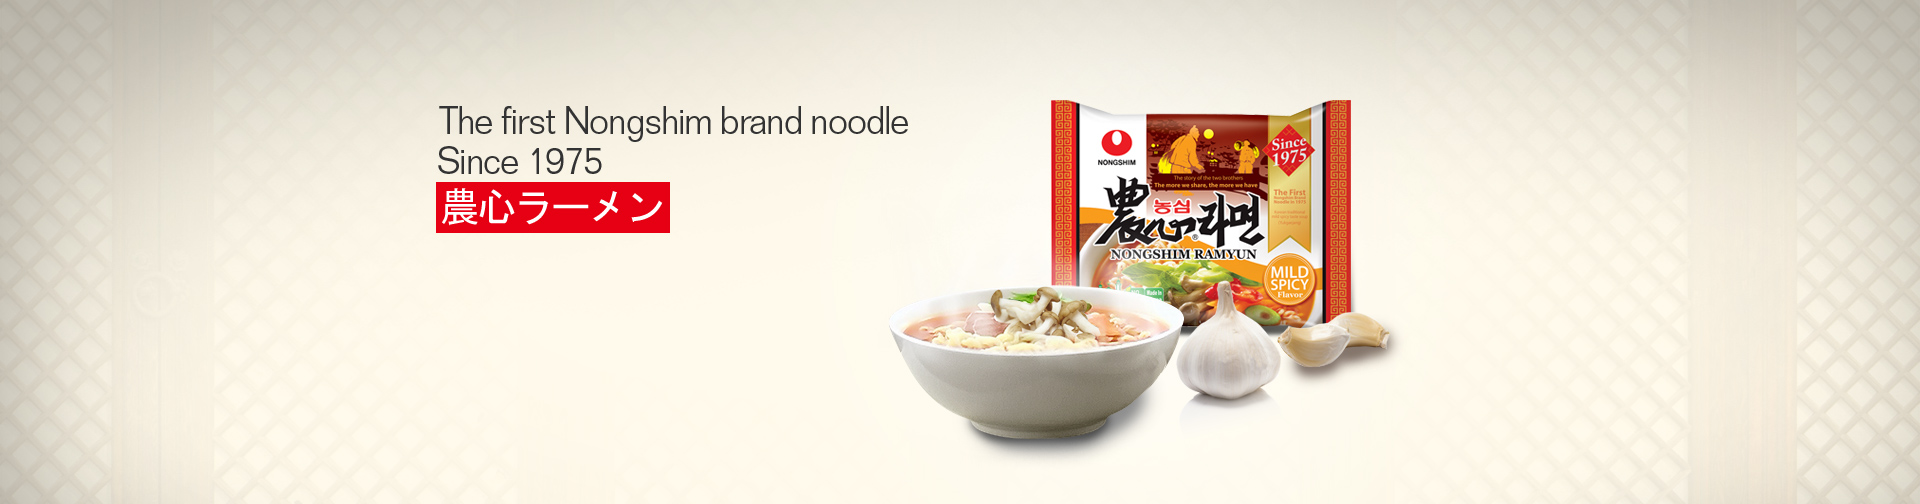 The first Nongshim brand noodle